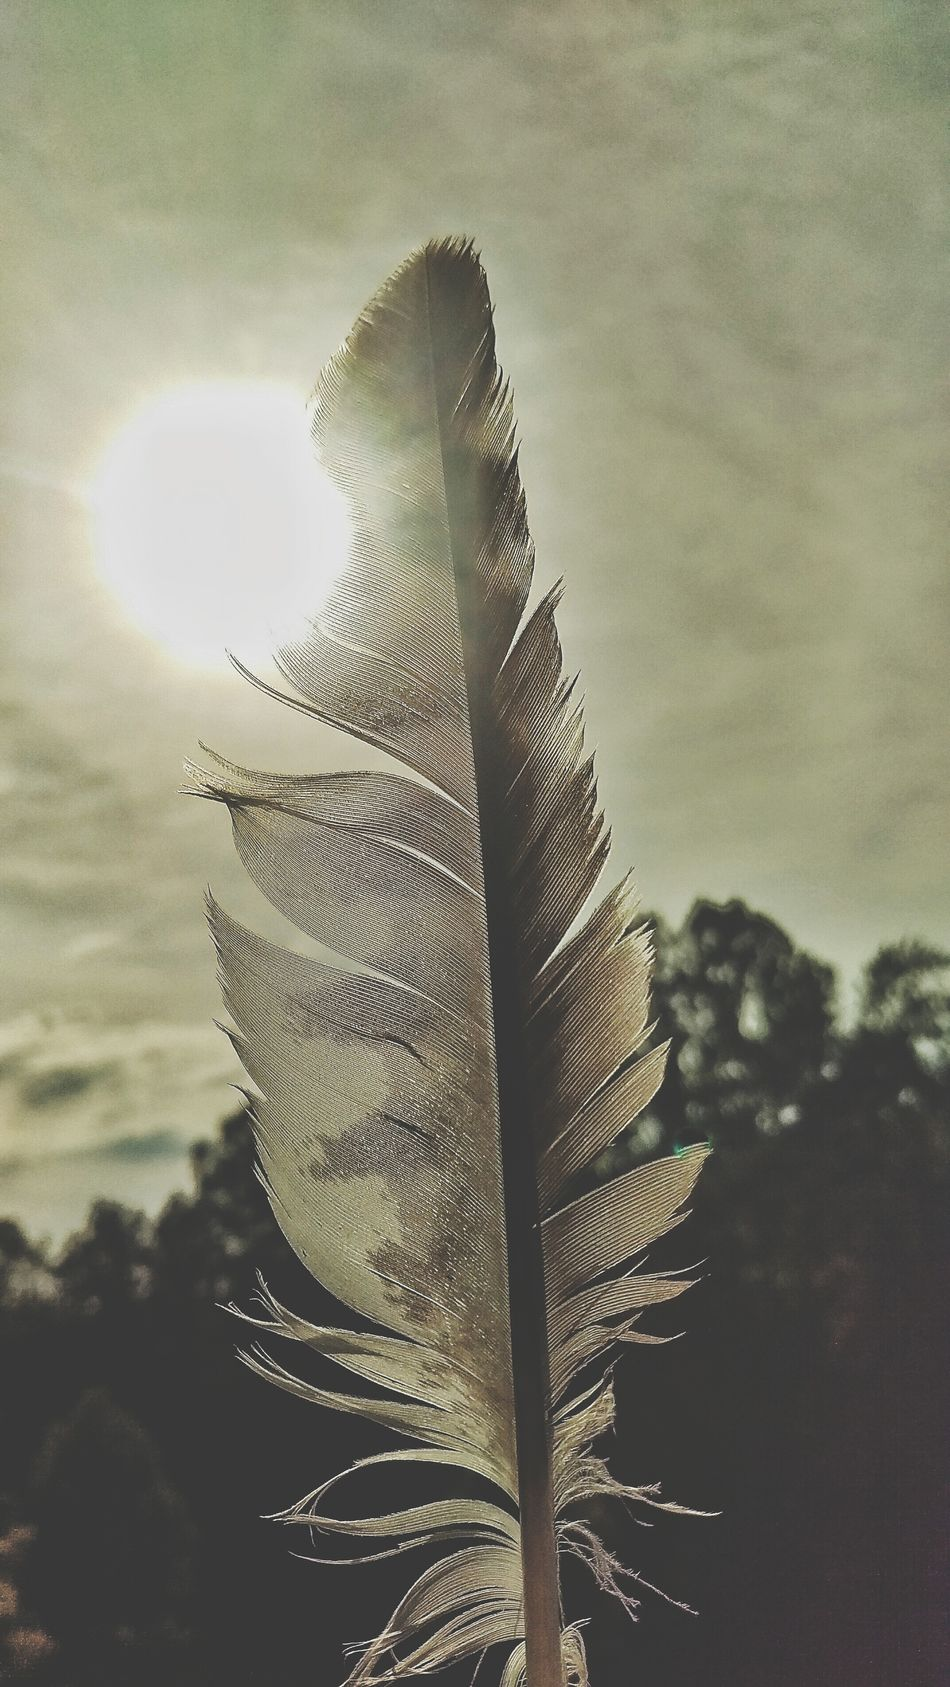 Hawk Feather Sunlight Feathers Natural Finds Nature Heals Nature Photography Eyemphotography Eyem Nature Lovers